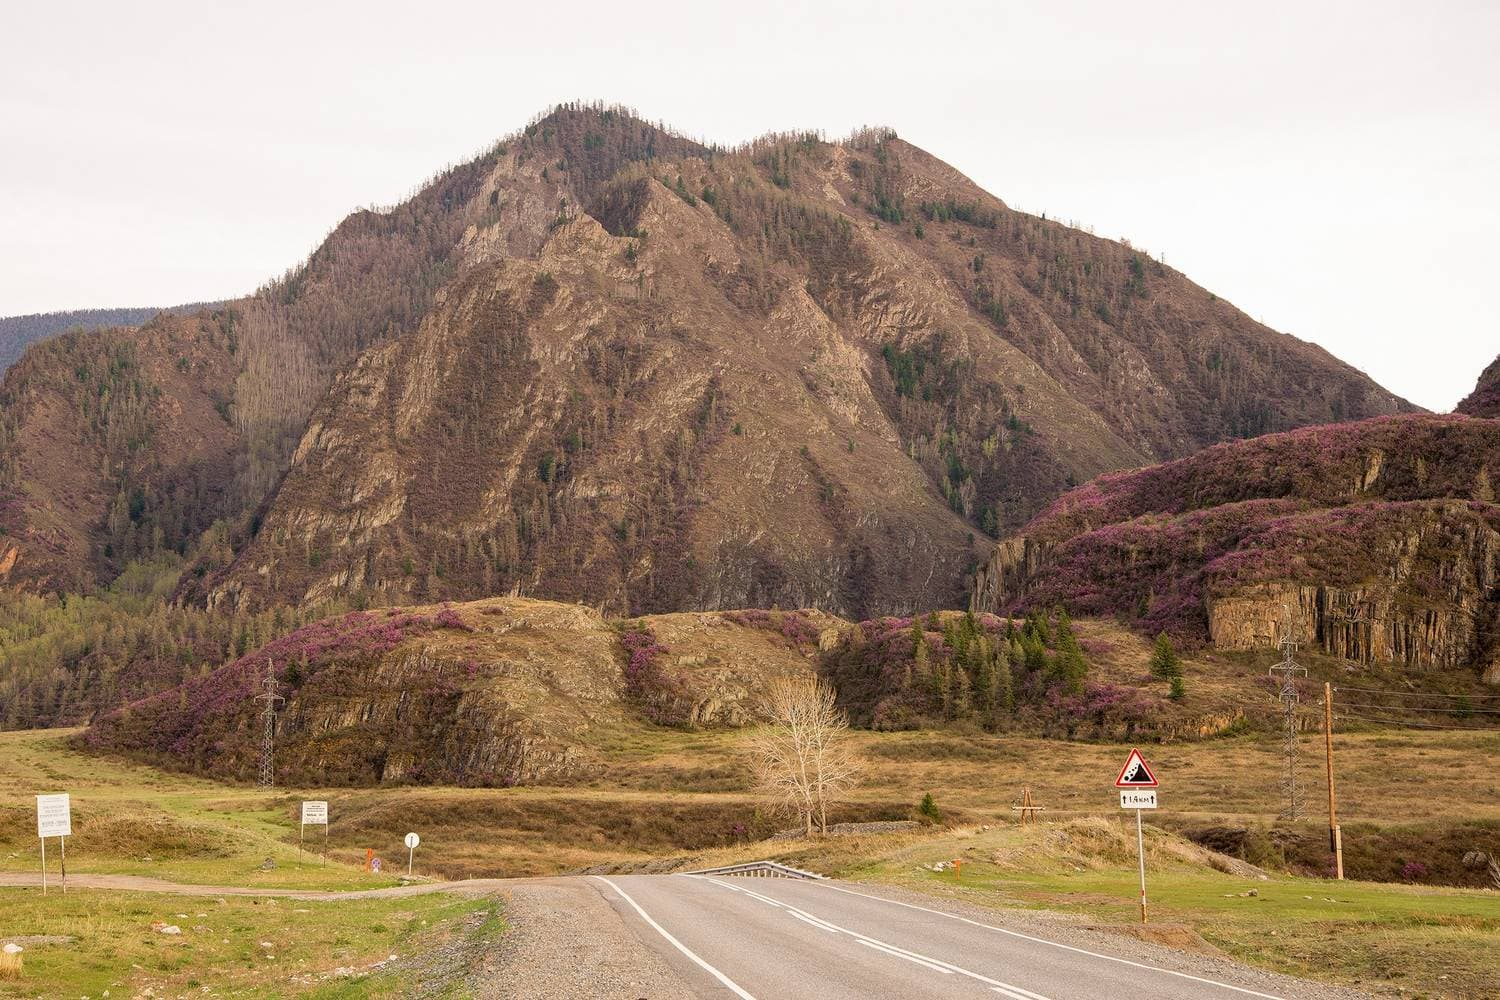 In Russia The Chuyskiy Tract Is Considered To Be One Of Oldest Roads Road First Mentioned Chinese Chronicles Thousands